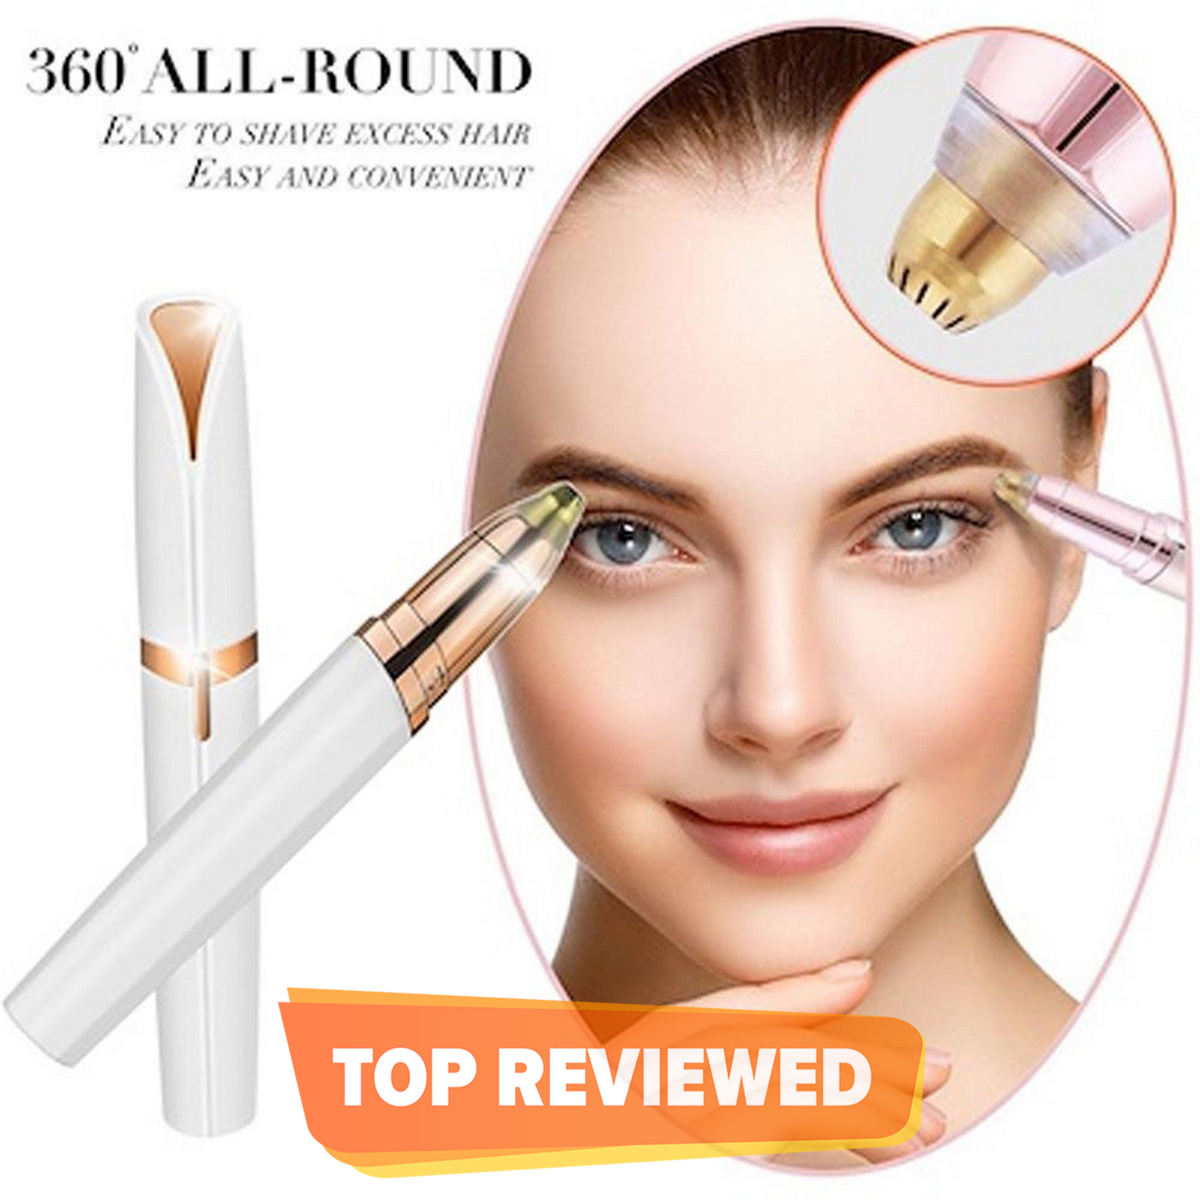 Chargeable Flawless Eyebrow Hair Remover Eyebrow Trimmer Pen Electric Shaver For Women With USB cable